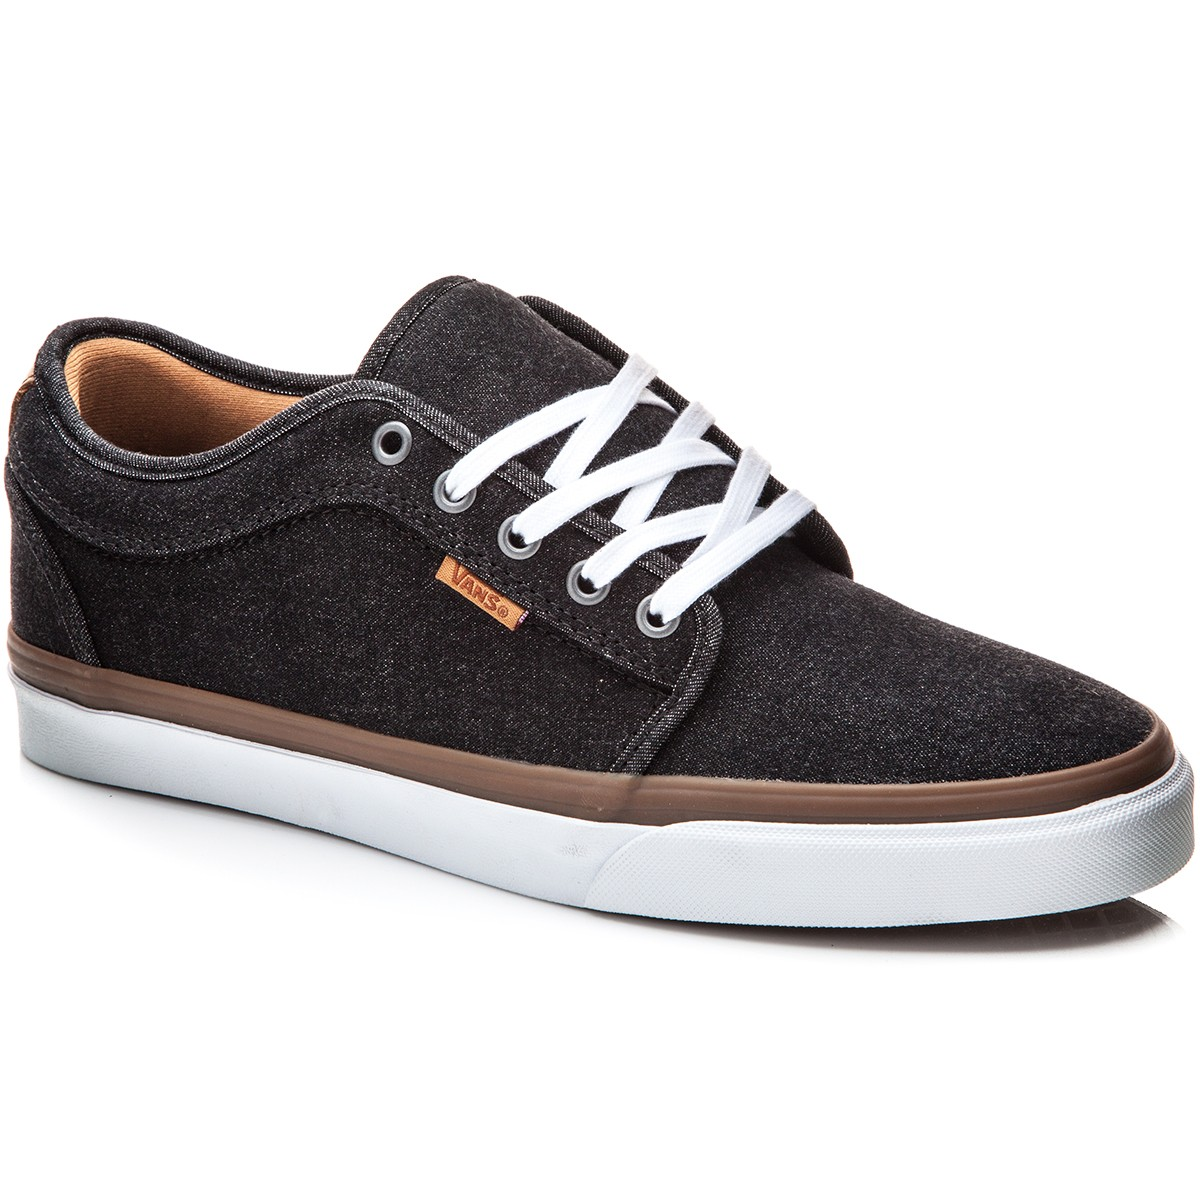 Vans Chukka Low Shoes - Denim Black/White - 10.0